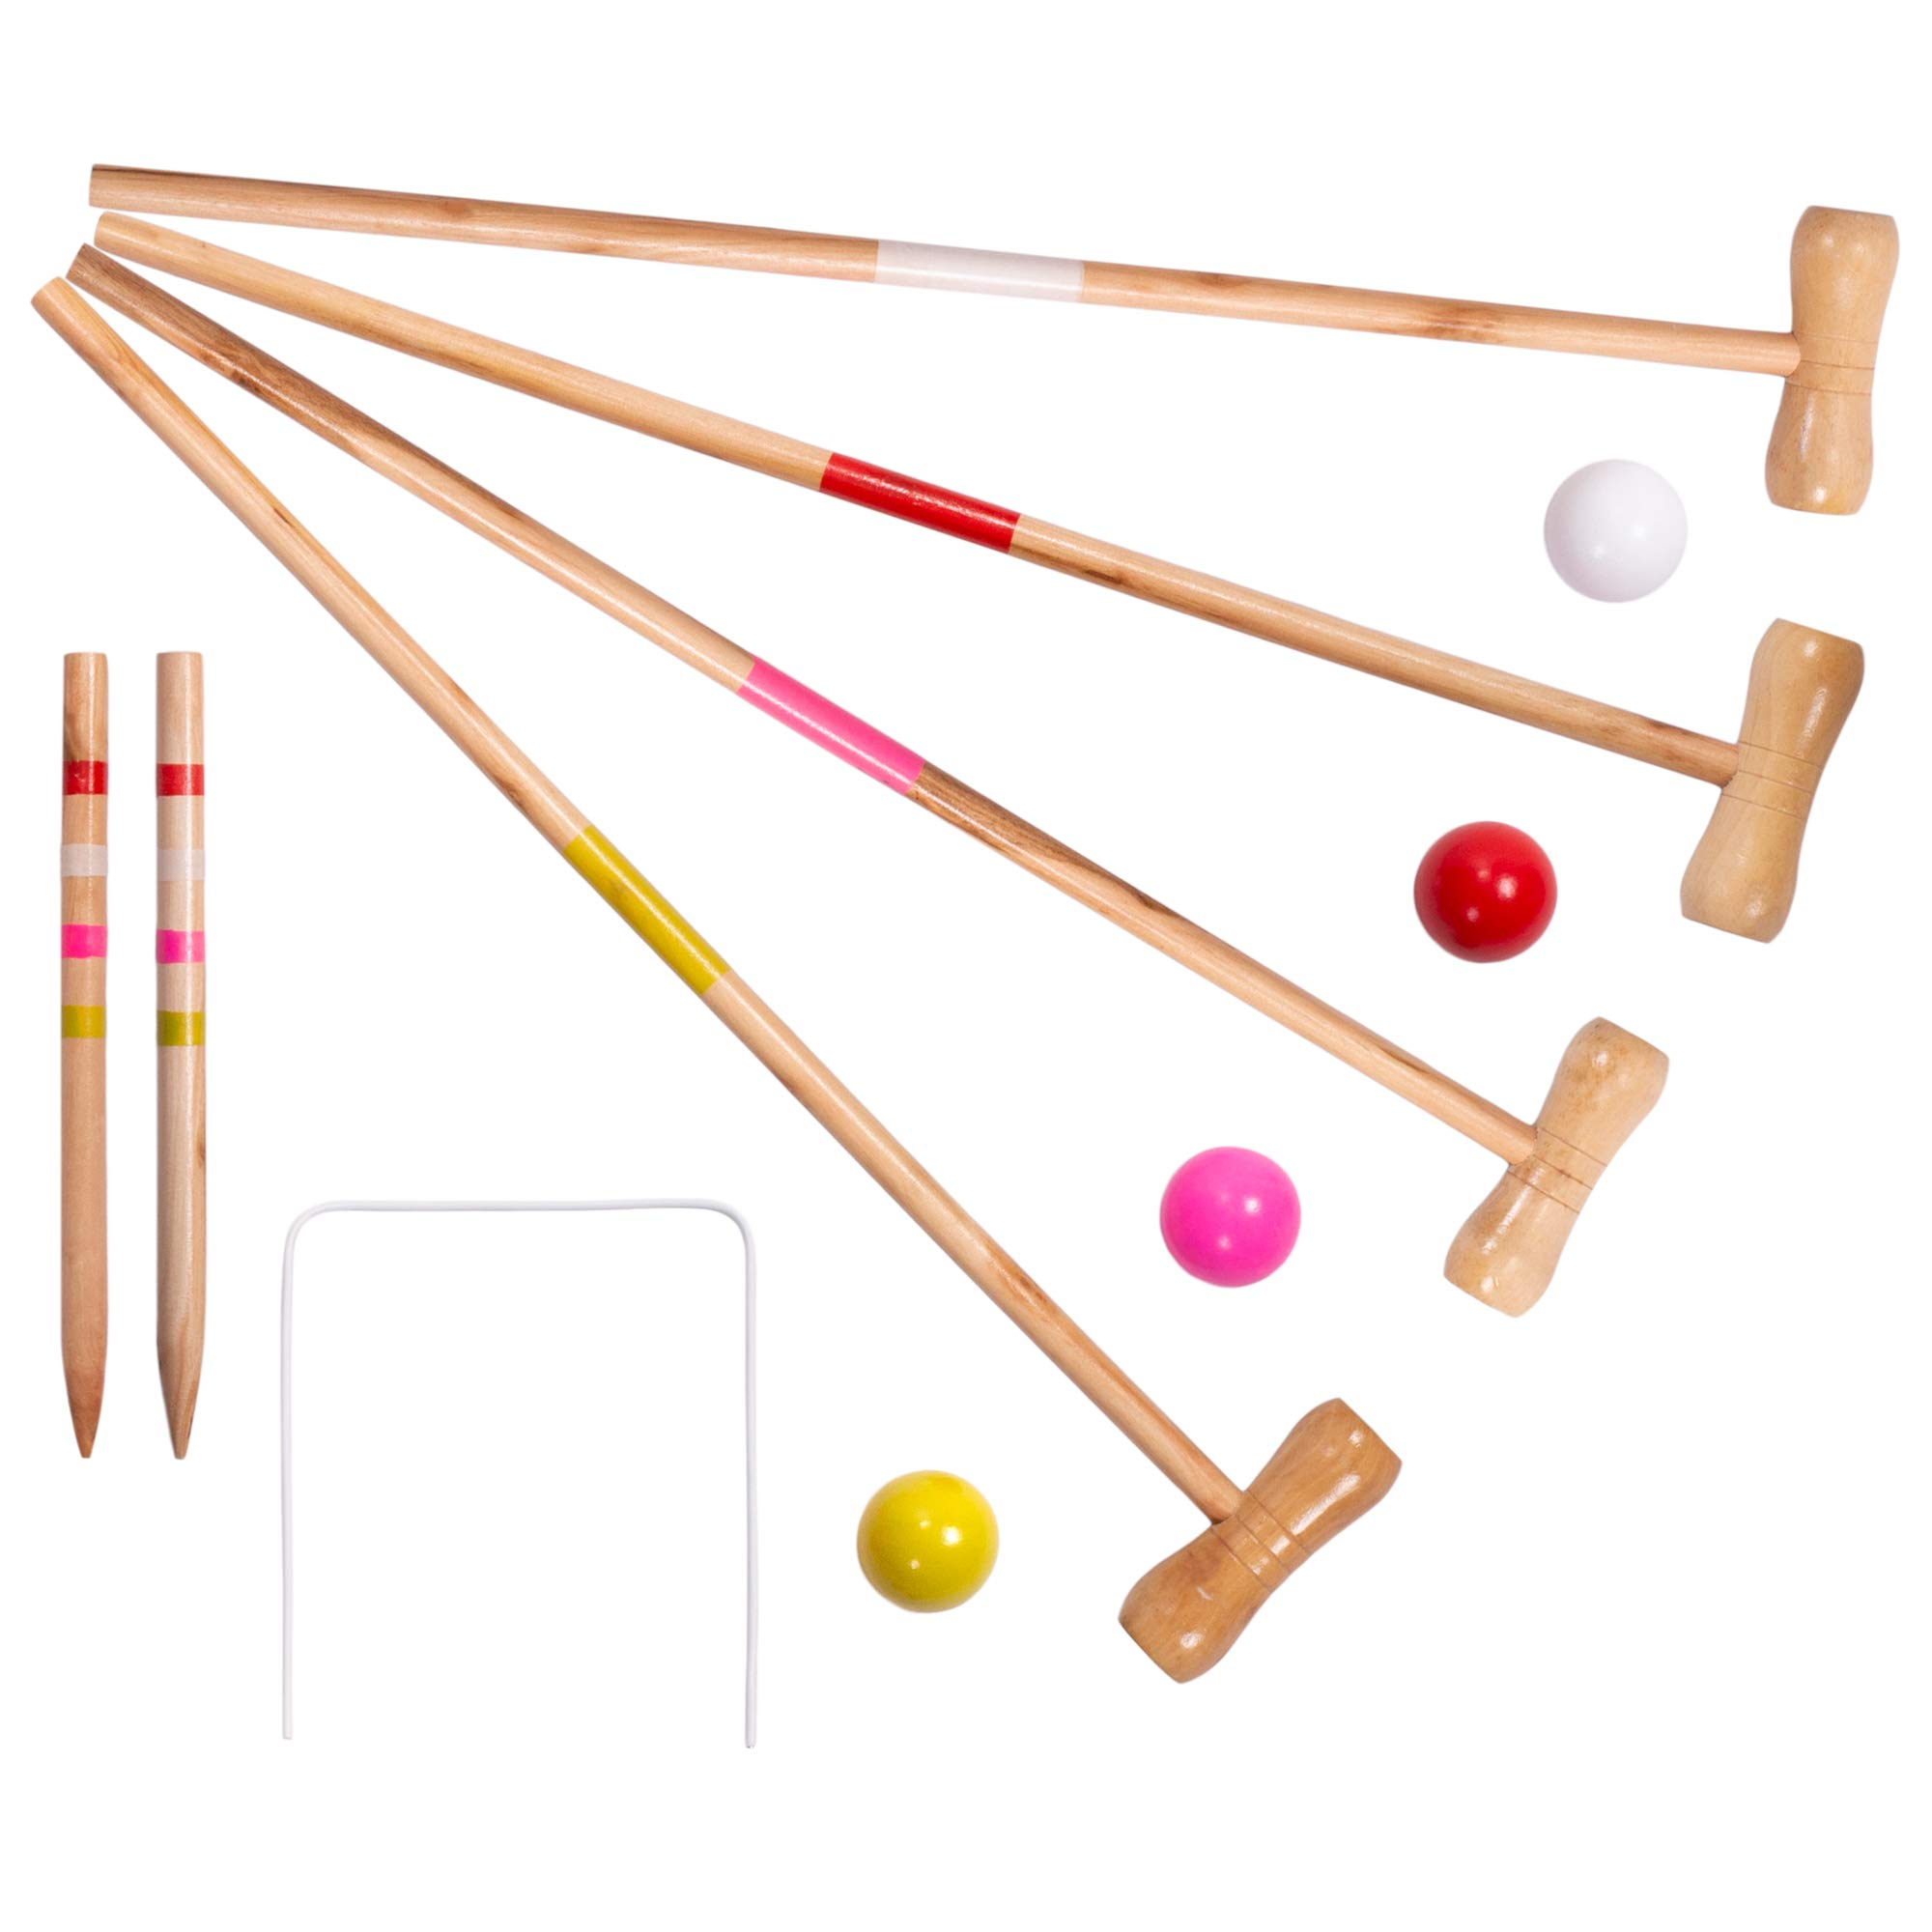 Kids Croquet Set for 4-Players | Classic Outdoor Lawn Game for Children | Great for Birthday Parties, Picnics, BBQs, and More | Comes with Mallets, Balls, Wickets, and a Carrying Bag for Portability by Crown Sporting Goods (Image #2)